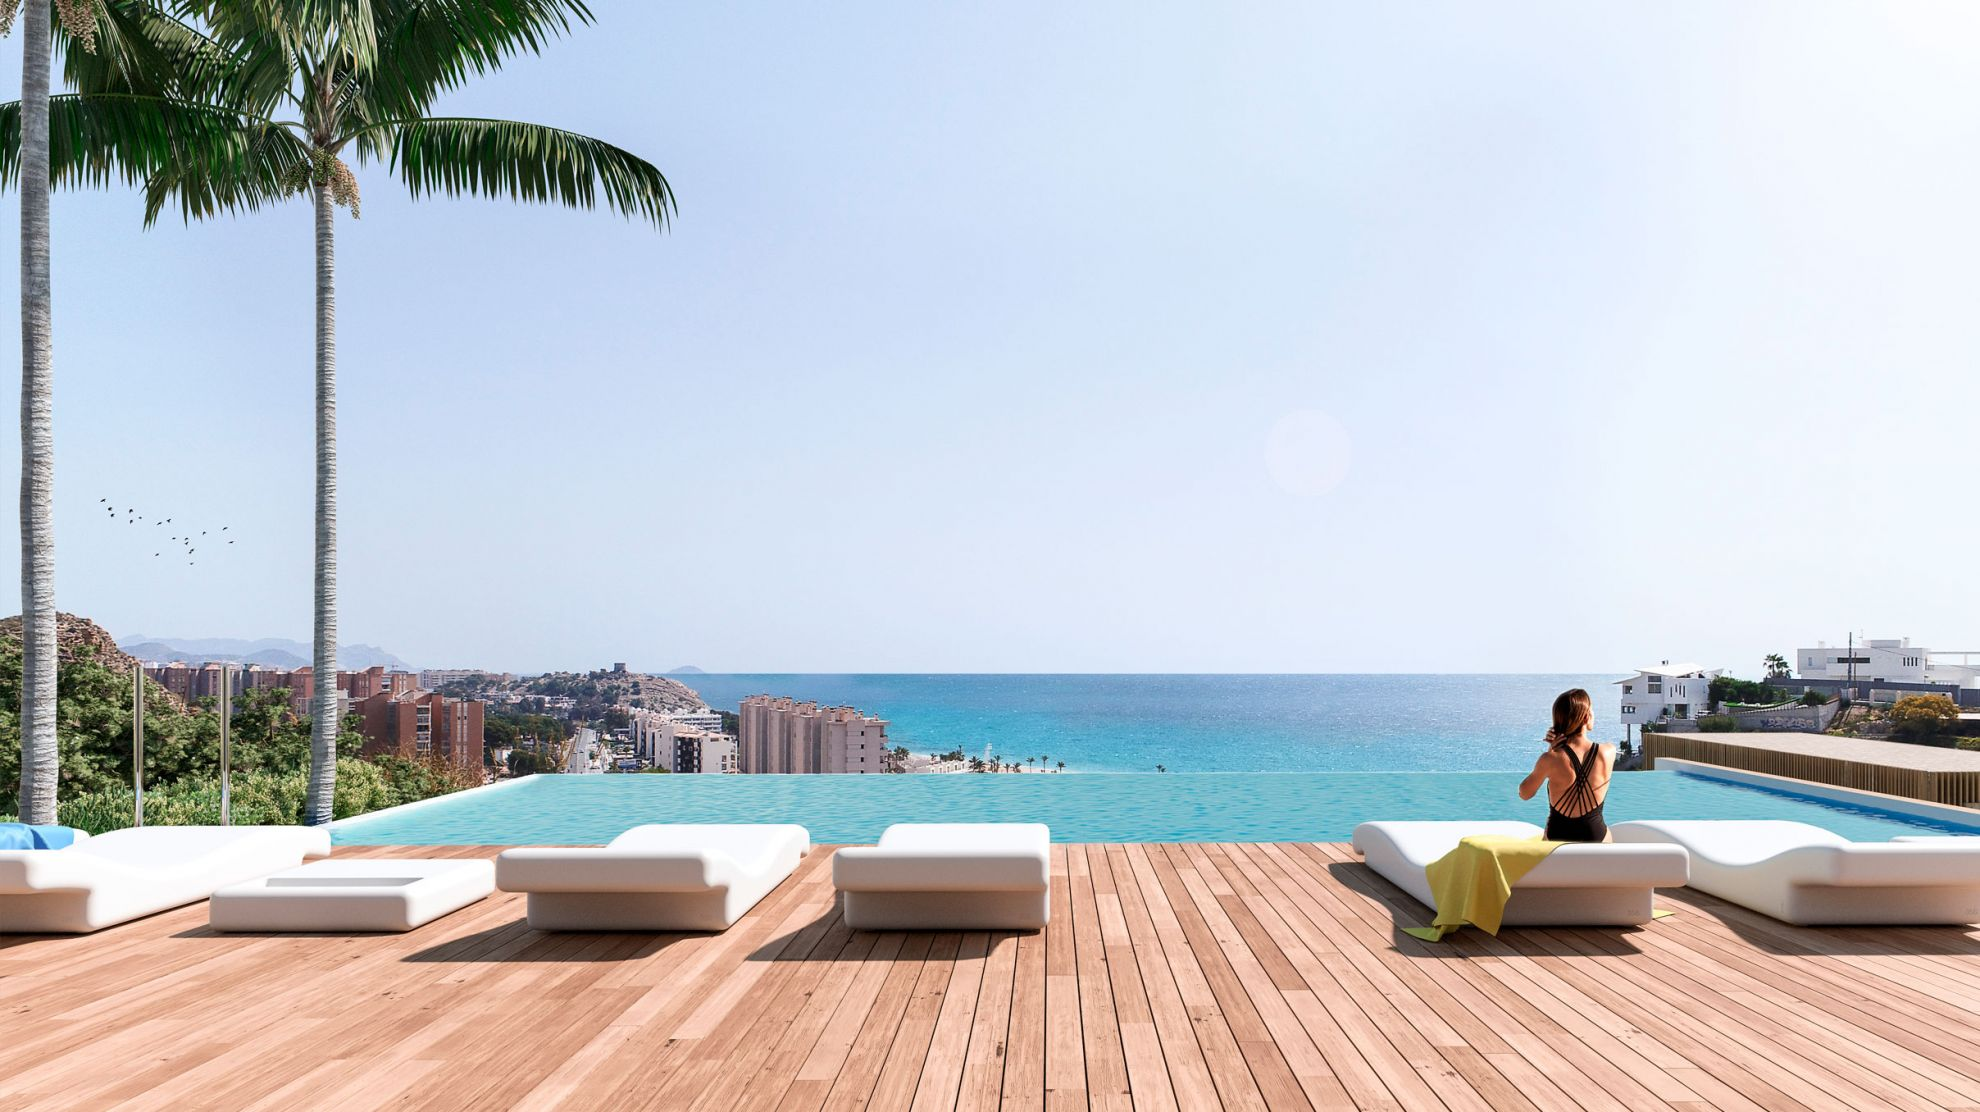 2 and 3 bedroom penthouse-style apartments with big terraces overlookg the sea. House 3 10